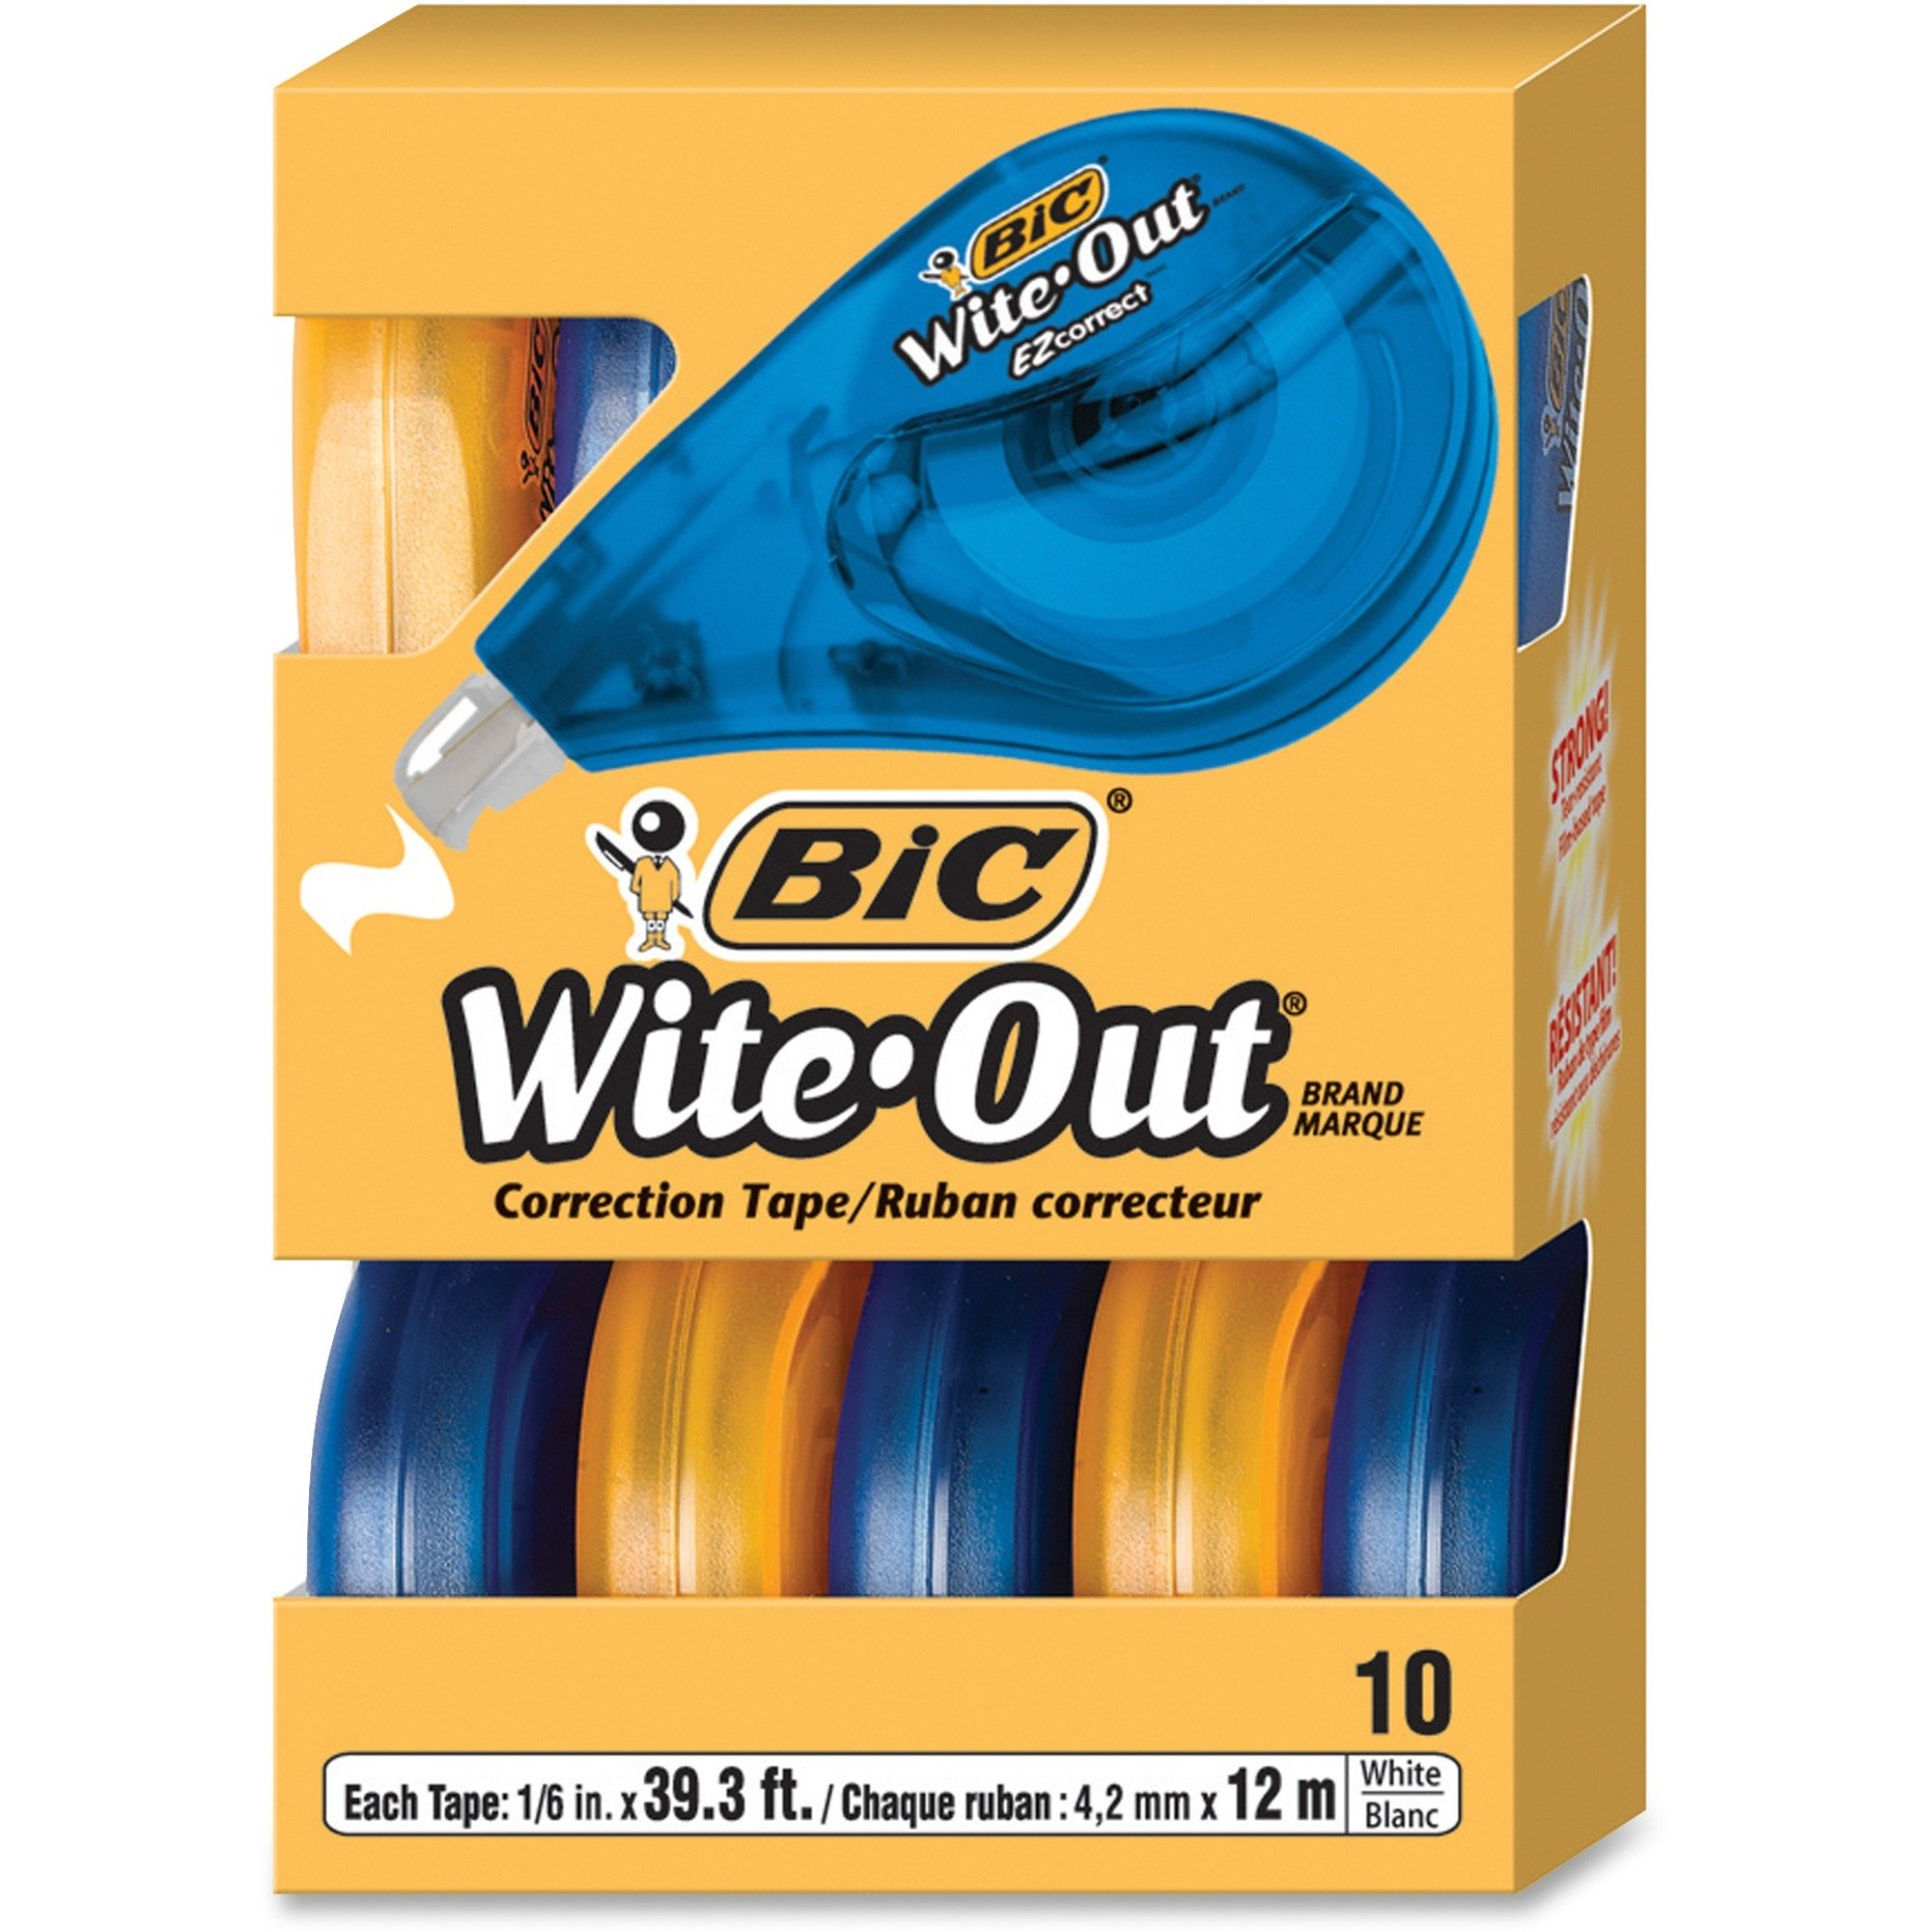 BIC Wite-Out Correction Tape - 10 pack